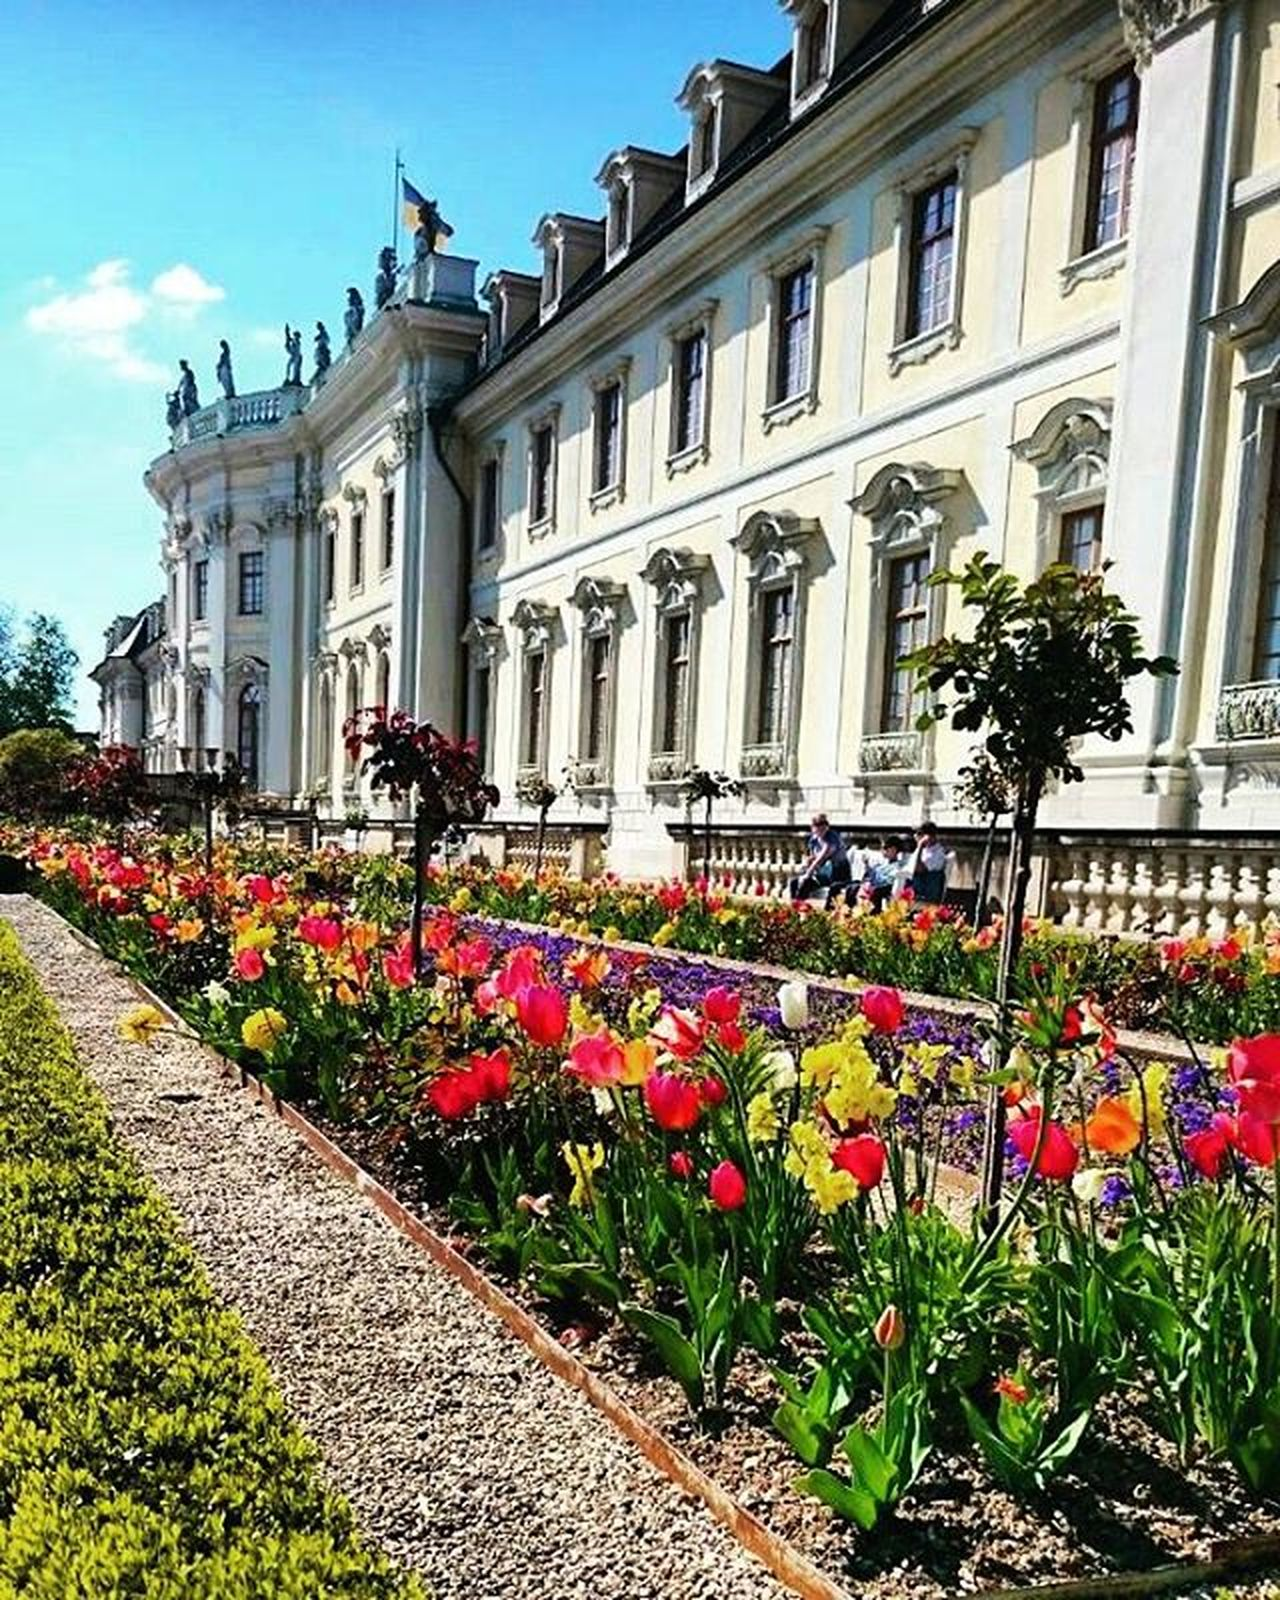 summer is coming🙆🌞 Ludwigsburgpalace Sunnymood Sun Lategram Instamood